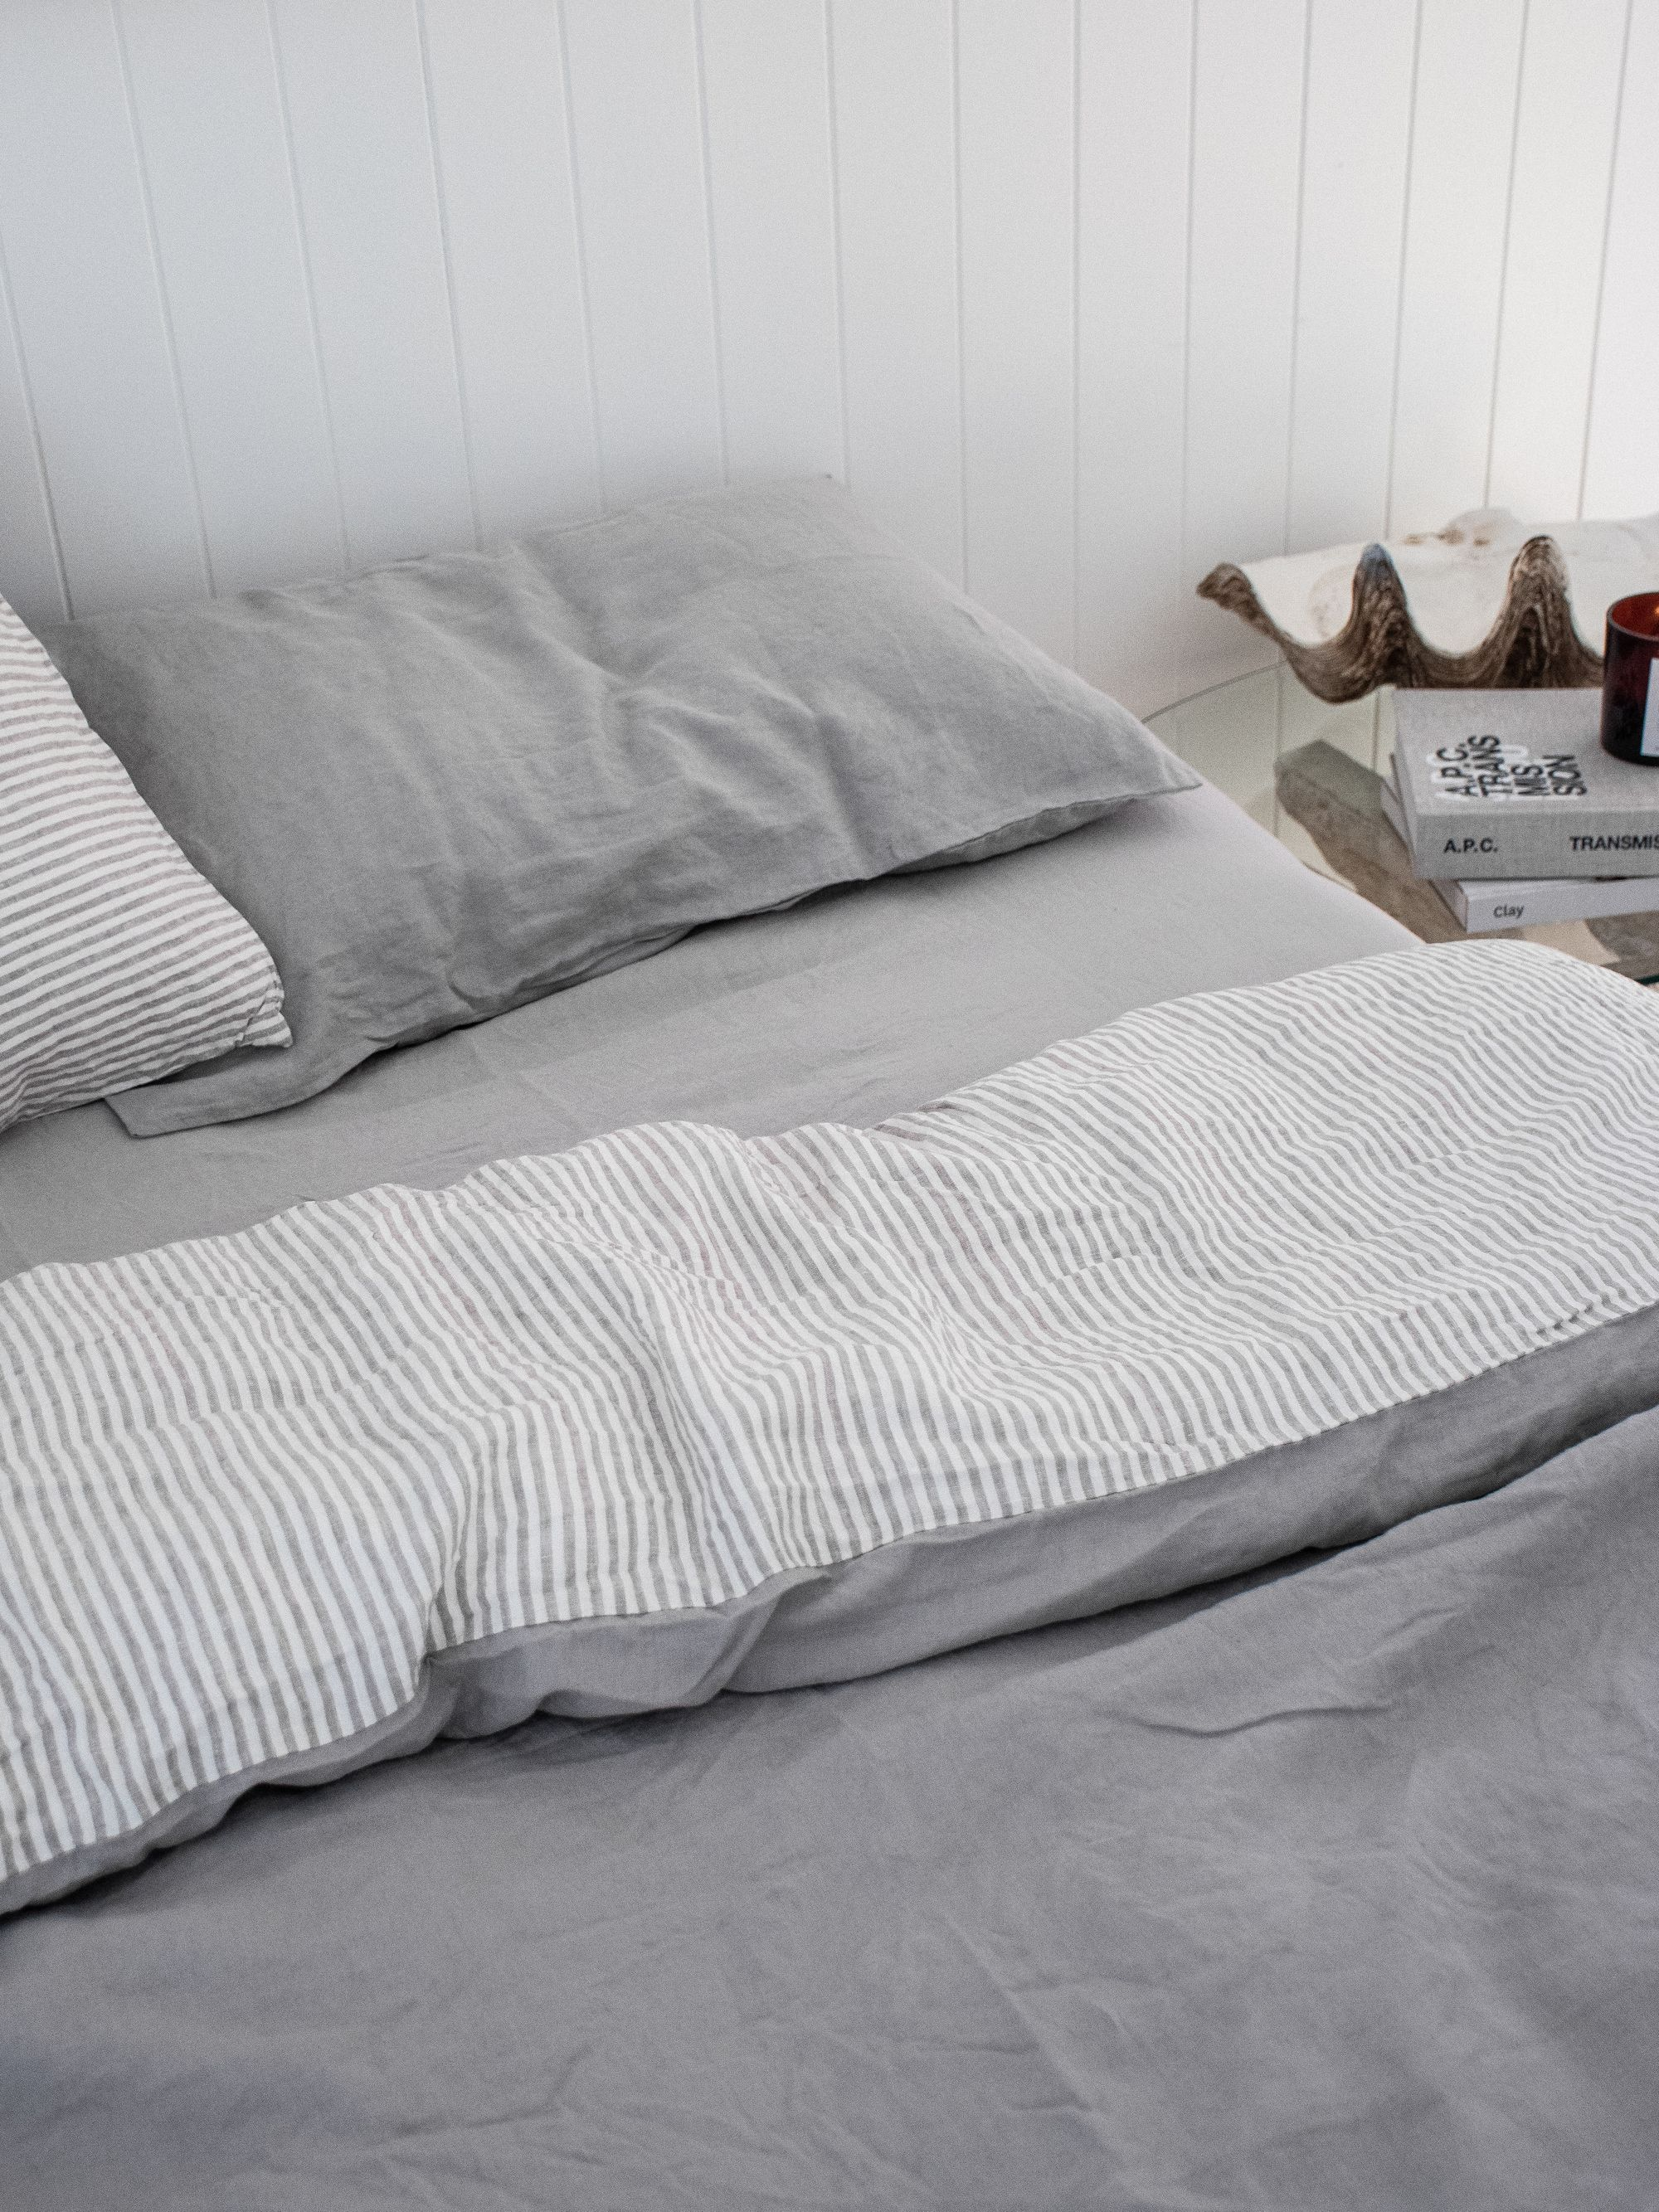 French Linen Bedding In Soft Grey Soft Grey Stripe Beautiful Home Decor Aesthetic Design Bedroom Styling Pure Linen Bedding Dreamy Bedrooms Room Planning